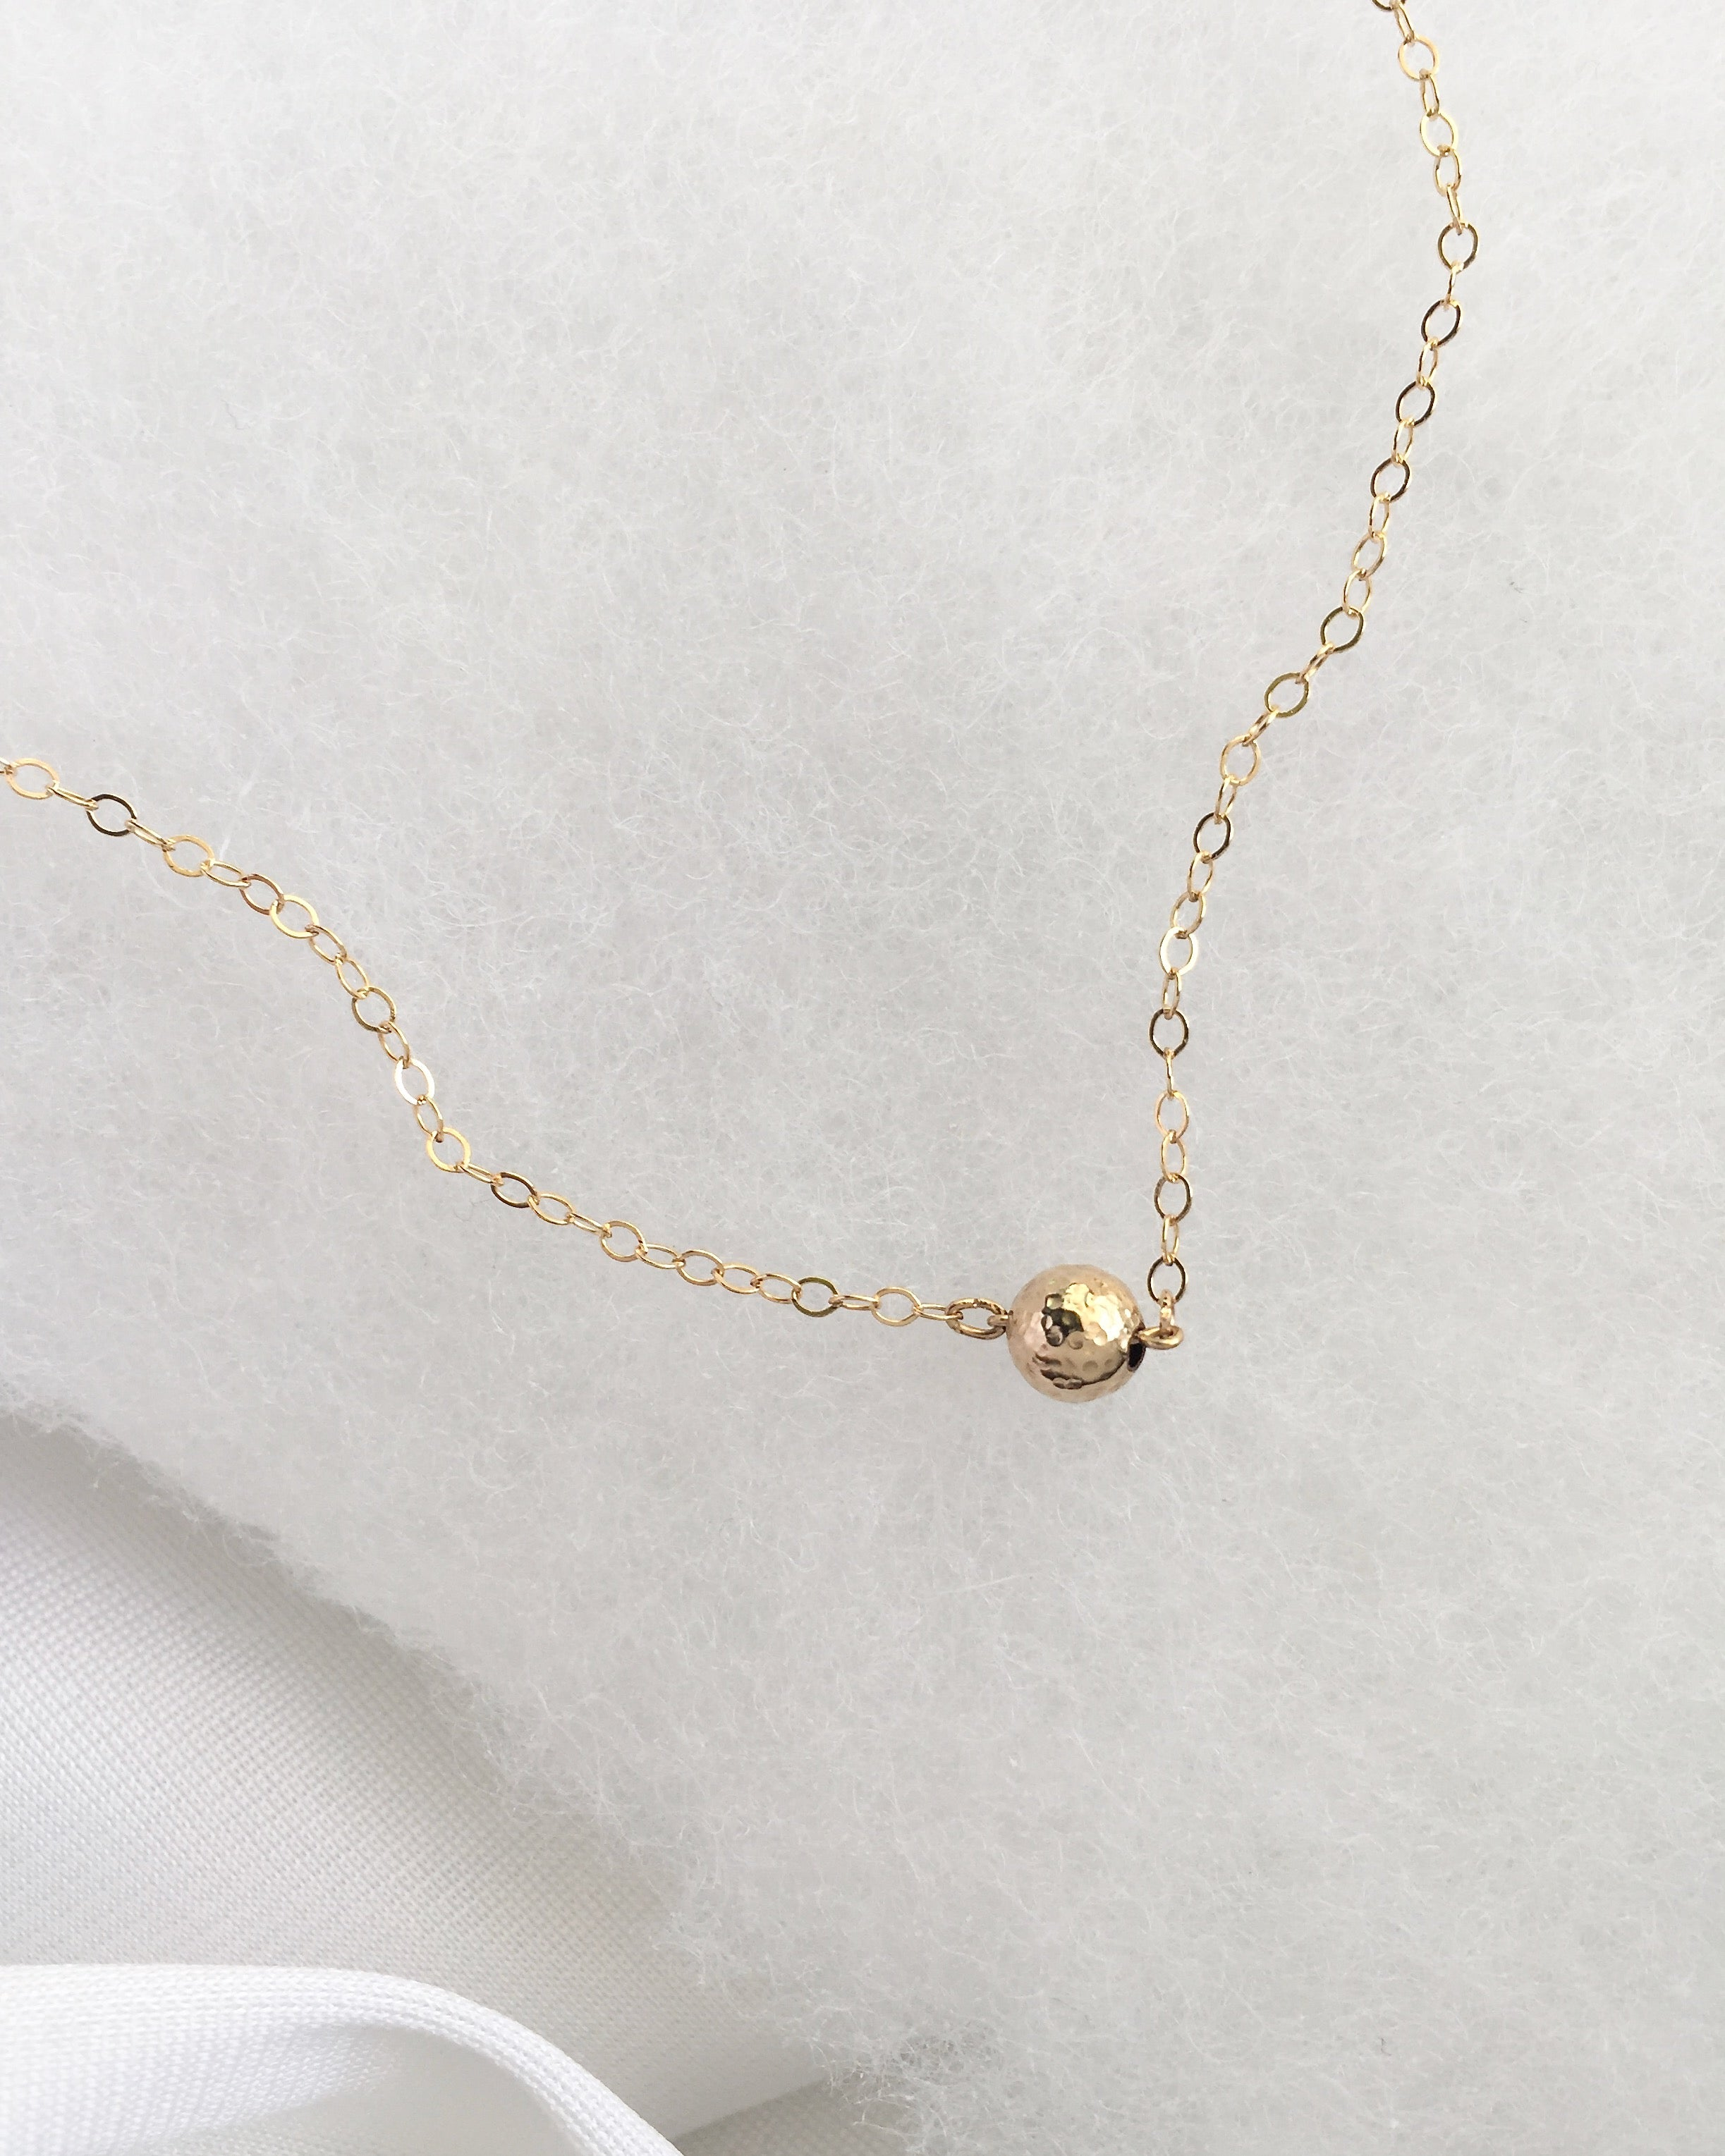 Simple Tiny Ball Necklace in Gold Filled or Sterling Silver | IB Jewelry